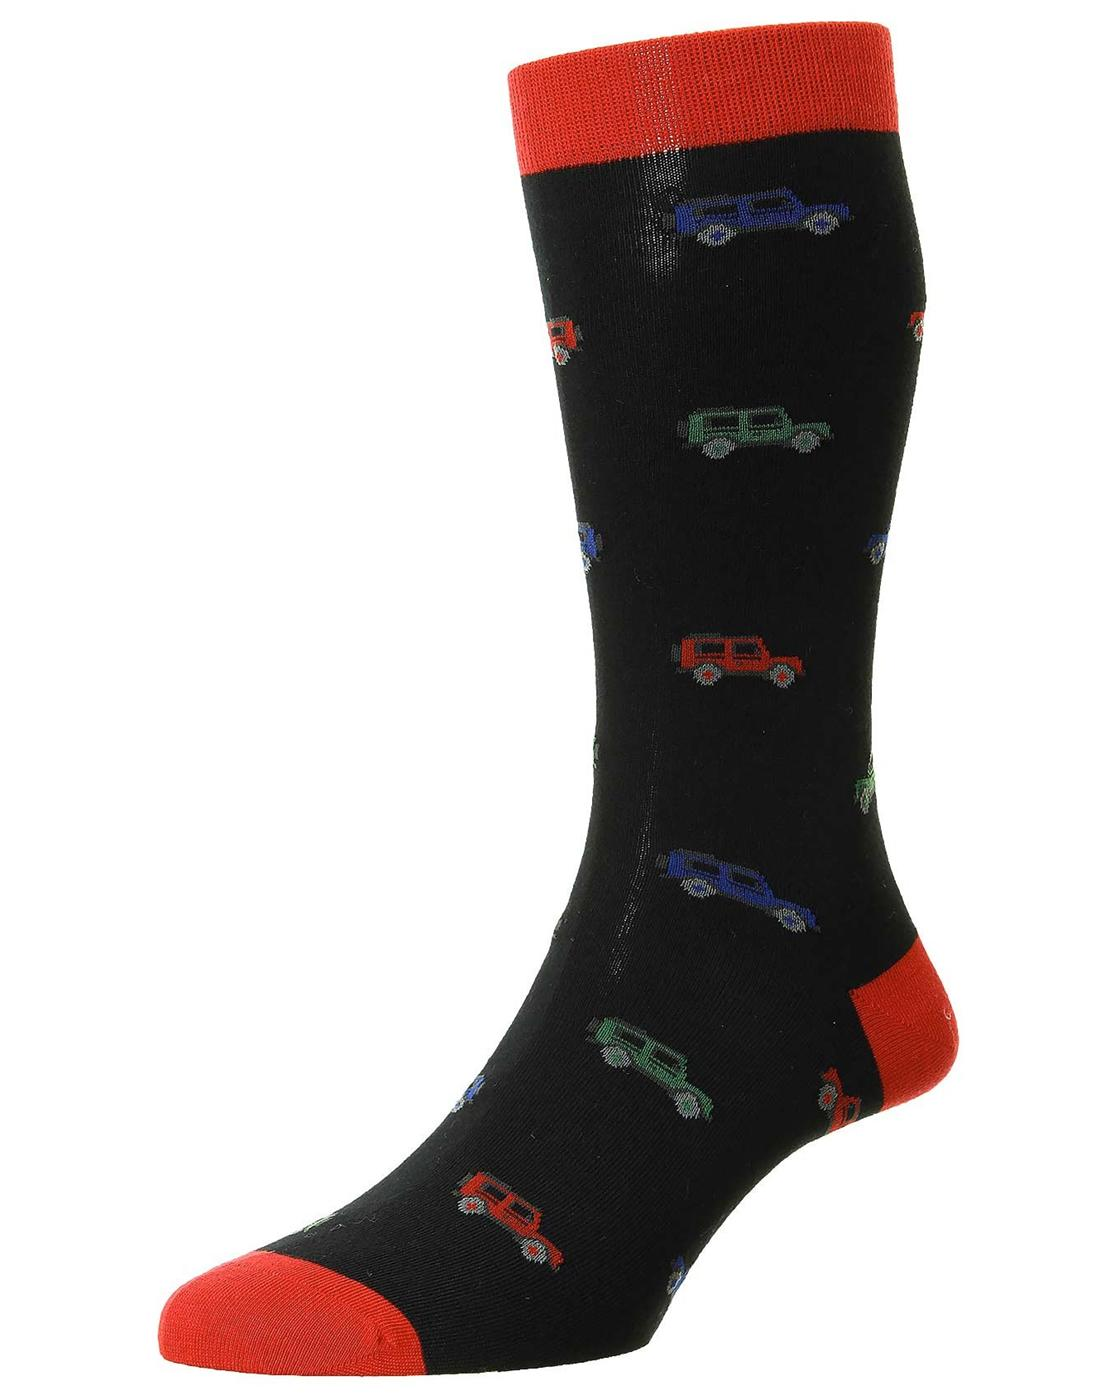 + Longshaw Cars SCOTT-NICHOL Retro Mens Socks